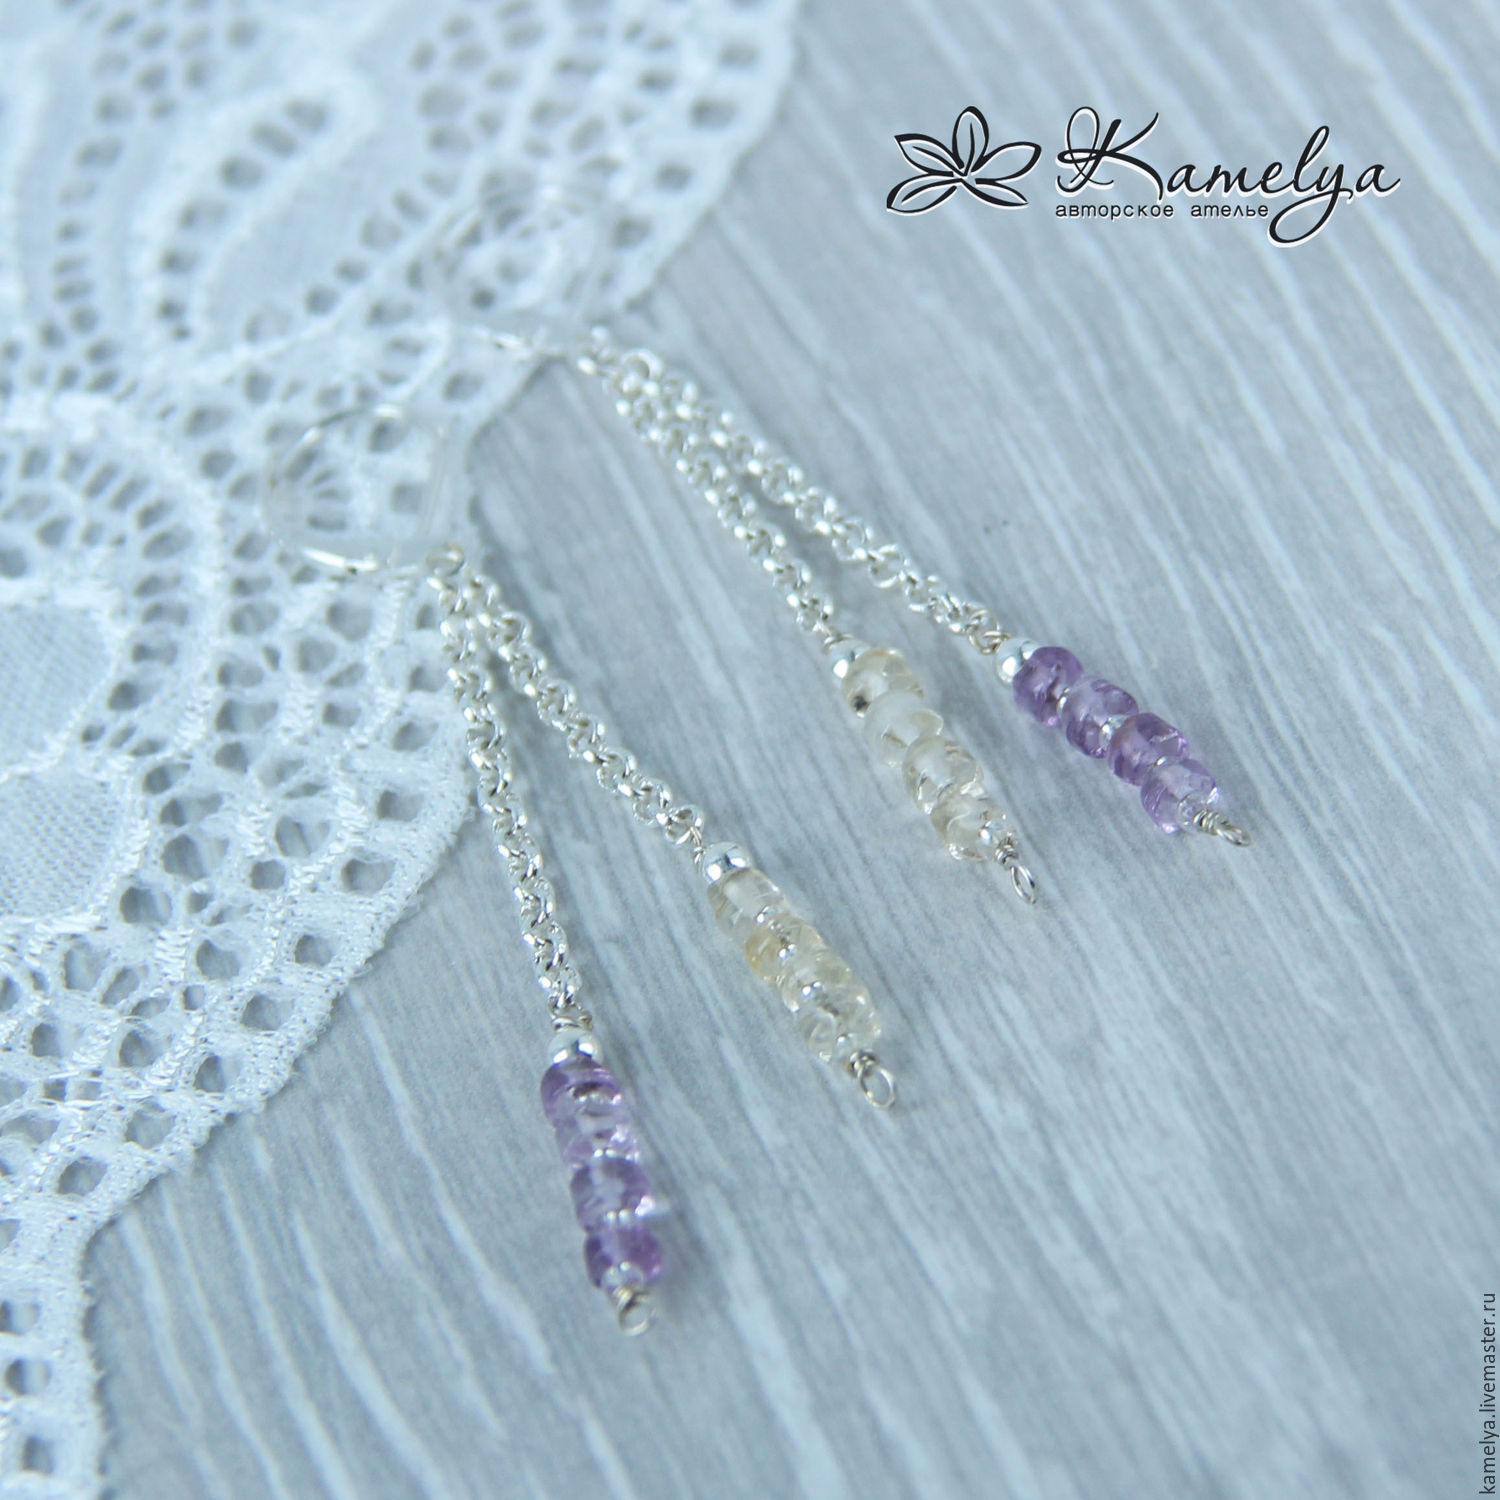 earrings with amethyst and citrine 'fabulous fairy', Earrings, Yaroslavl,  Фото №1